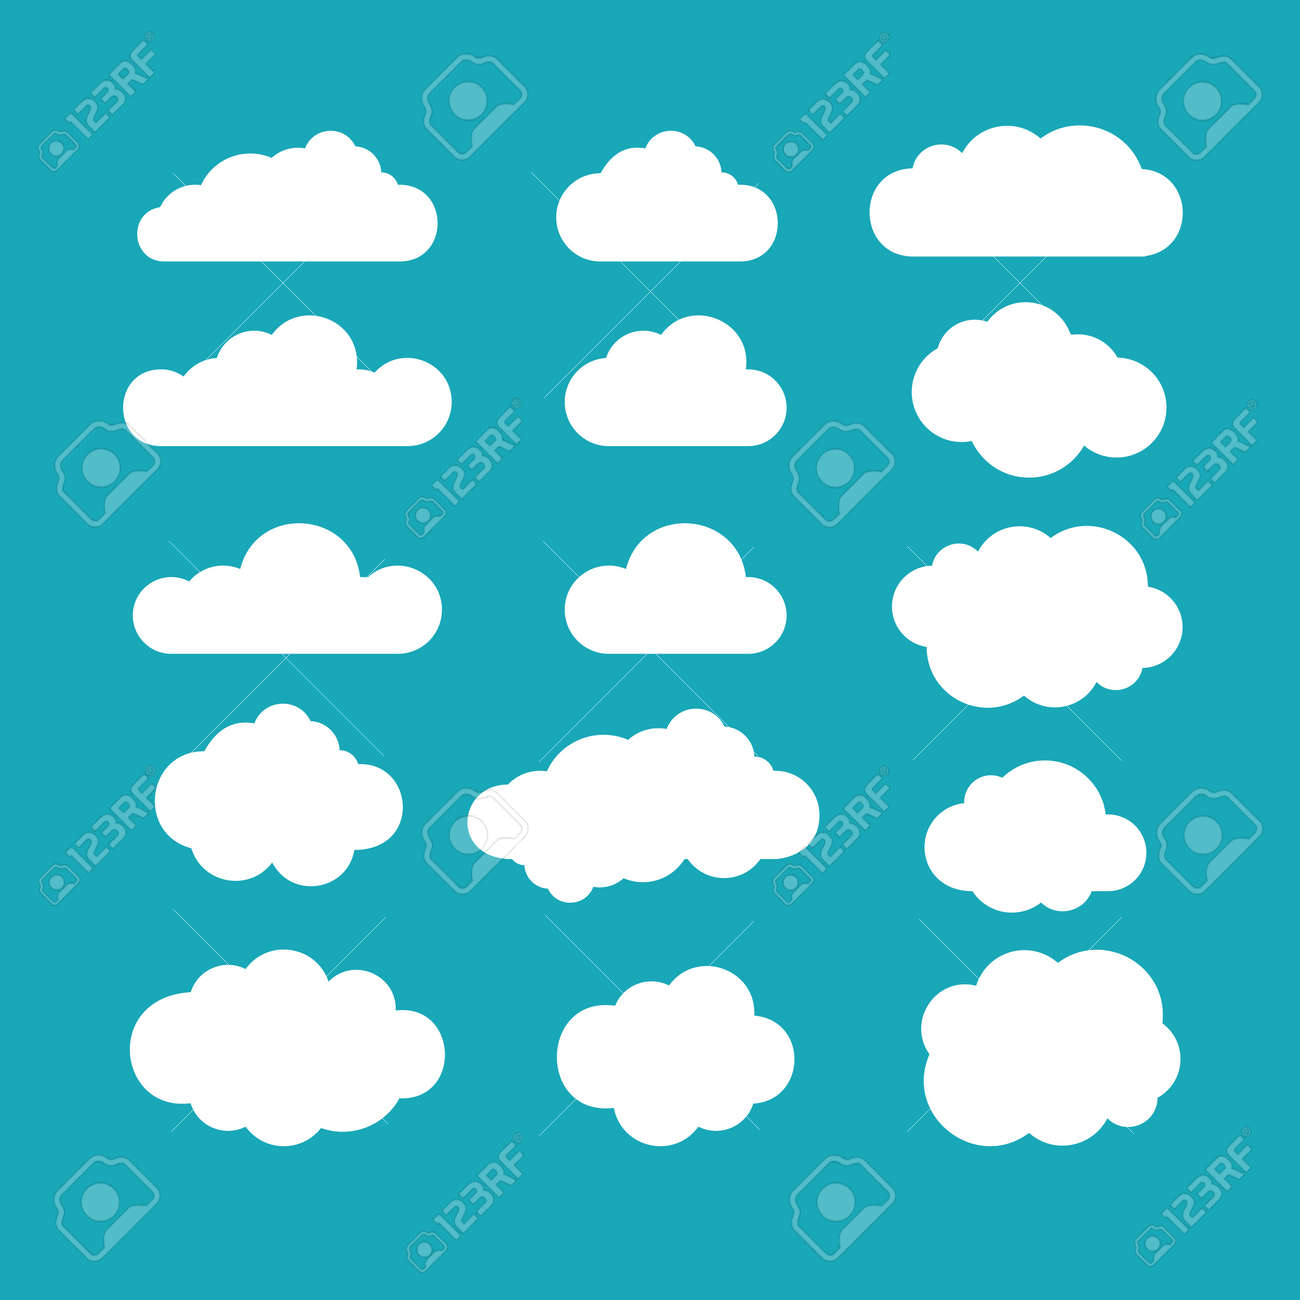 Set of blue sky, clouds. Cloud icon, cloud shape. Set of different clouds. Collection of cloud icon, shape, label, symbol. Graphic element vector. Vector design element for logo, web and print. - 56416893